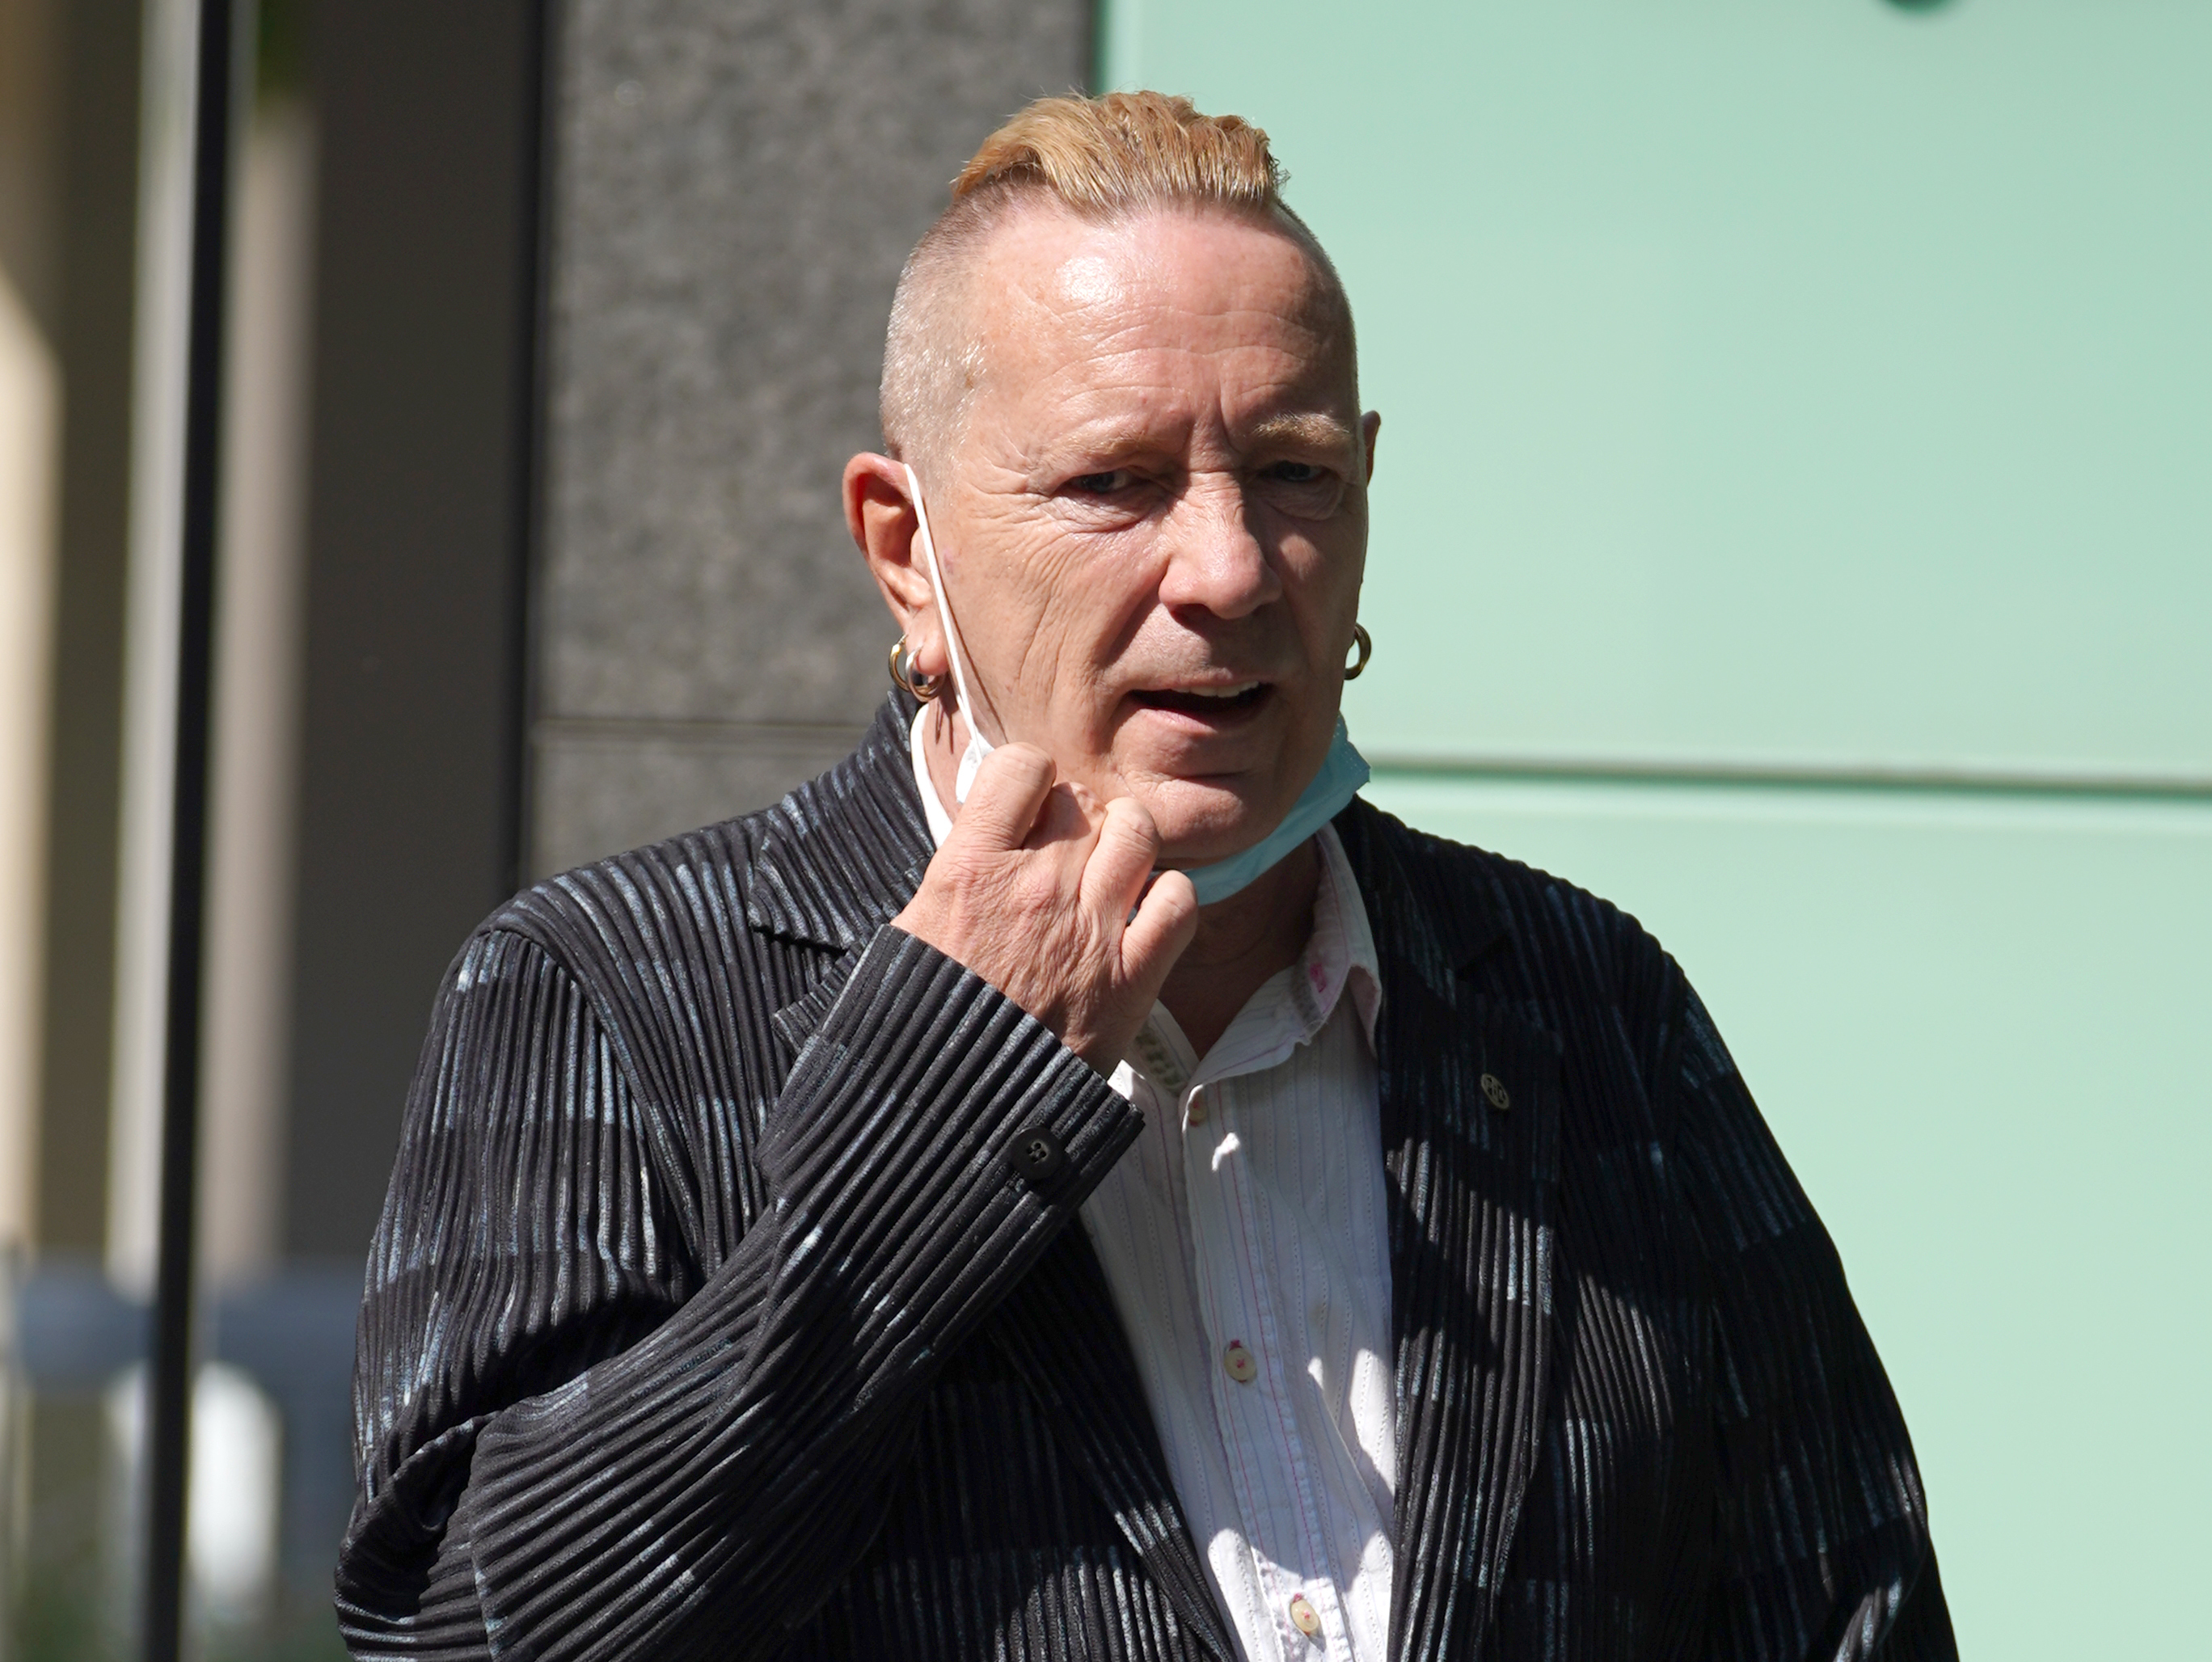 <p>John Lydon, aka Johnny Rotten, arriving at the Rolls Building at the Hight Court, London, for a hearing between two former Sex Pistols band members and the frontman over the use of their songs in a television series. Picture date: Monday July 19, 2021.</p>